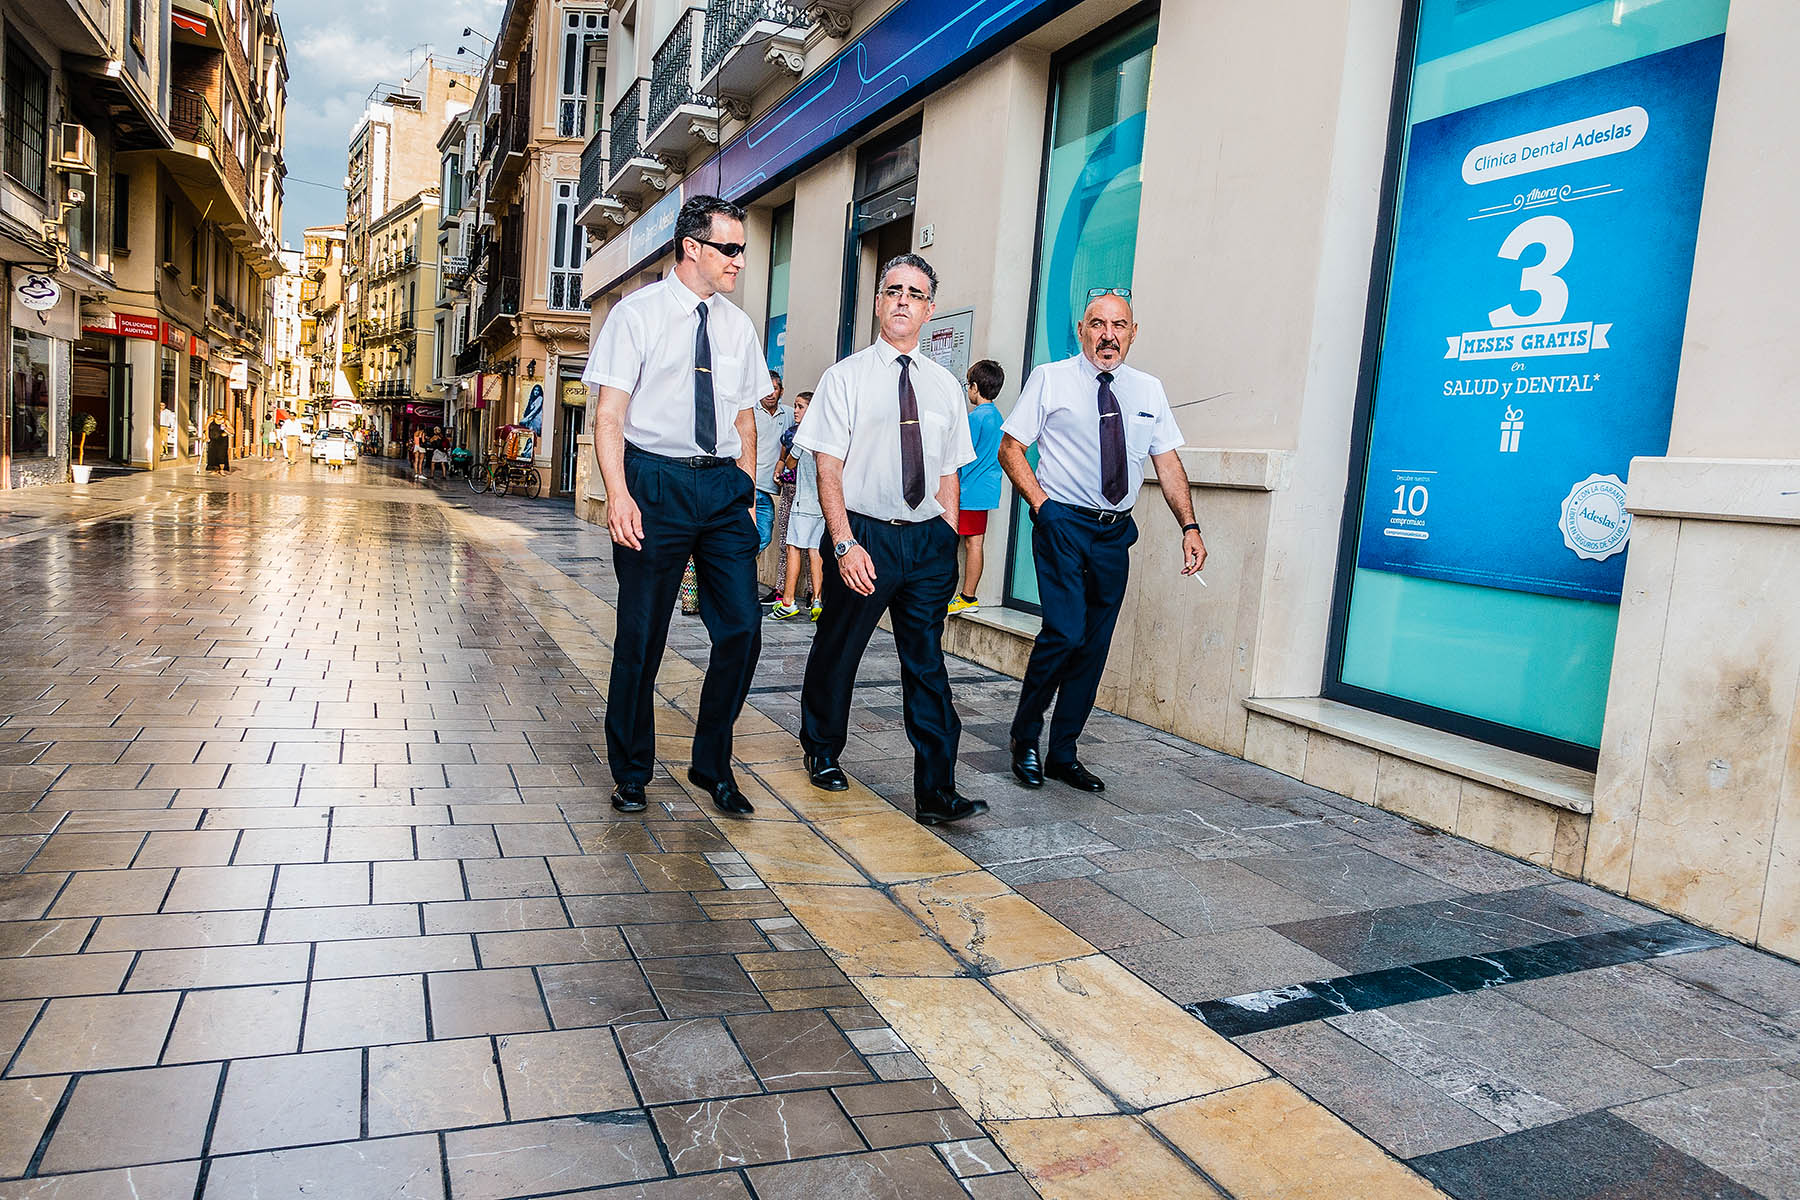 Three businessmen dressed identically alike, with white shirt, black tie, black slacks, black shoes and similar tie clasps walk in the streets of Málaga, Spain.